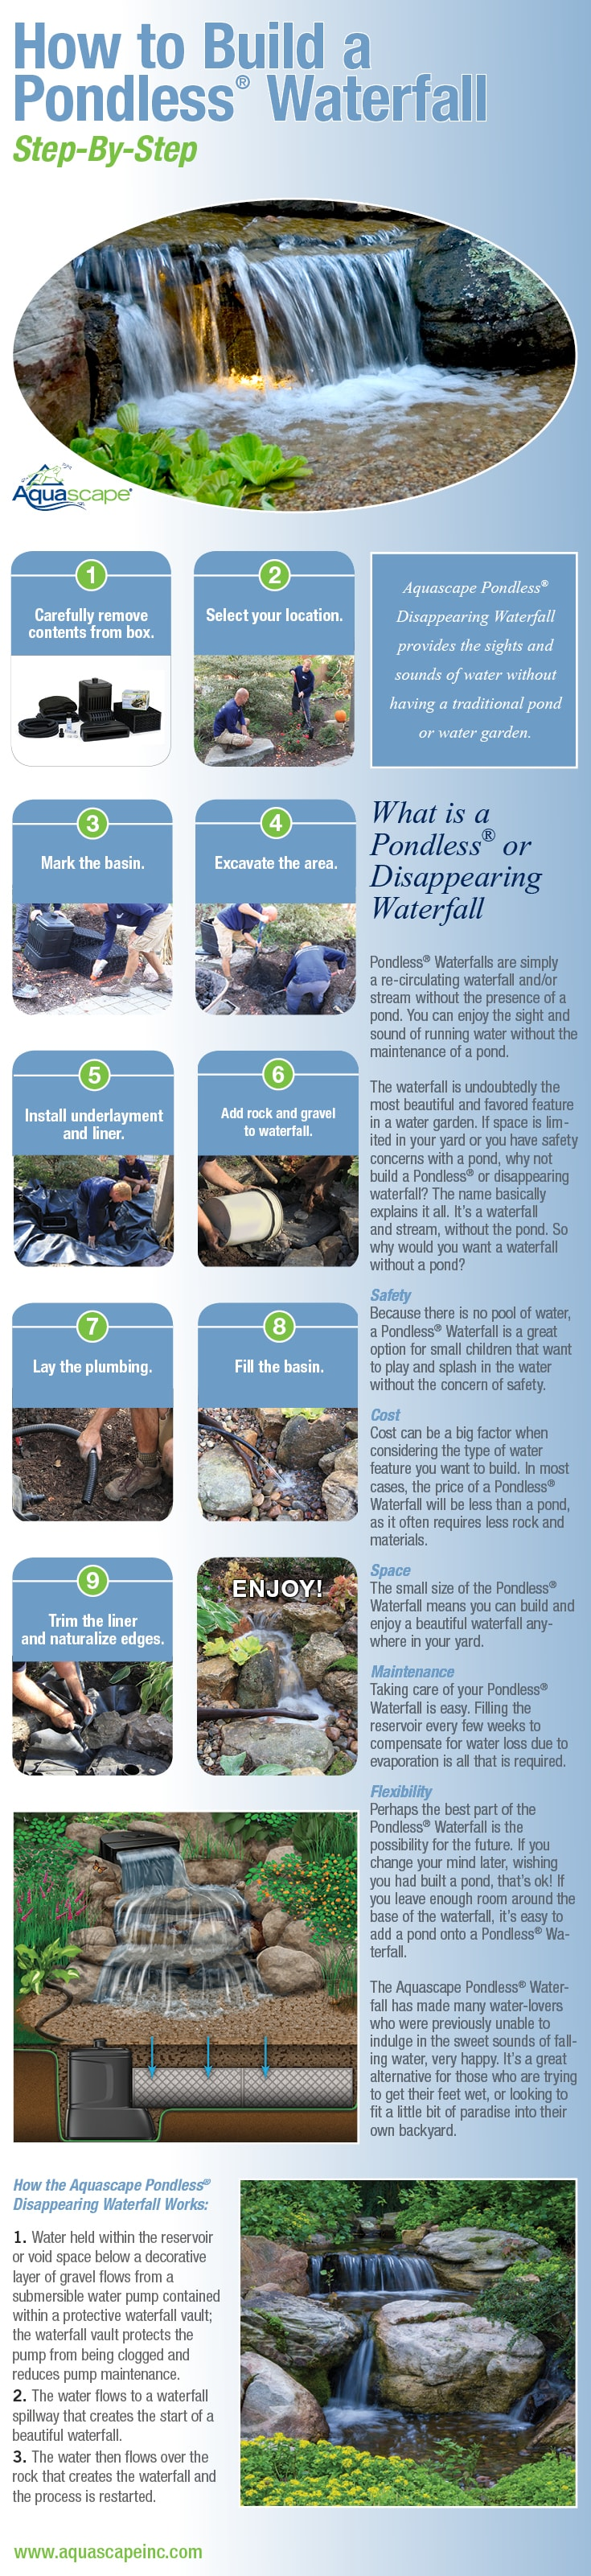 How to Build a Pondless Waterfall - Infographic